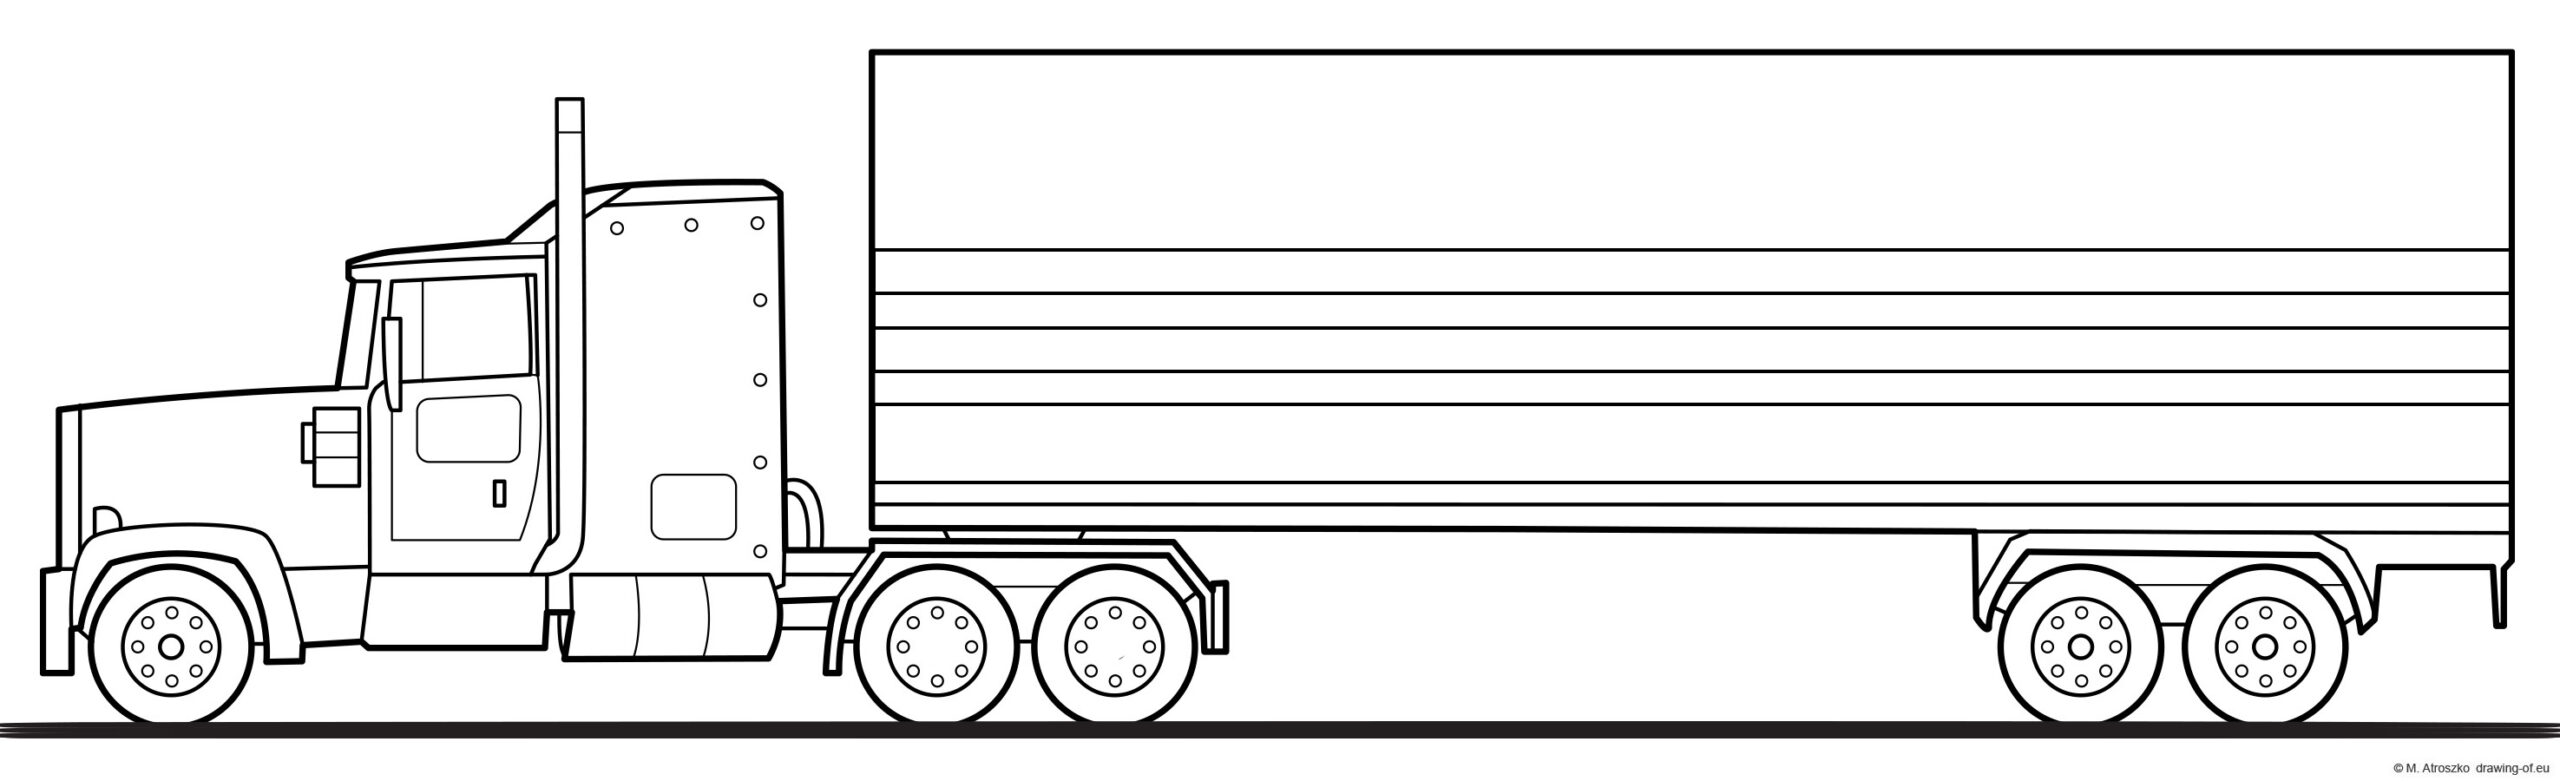 truck trailer drawing